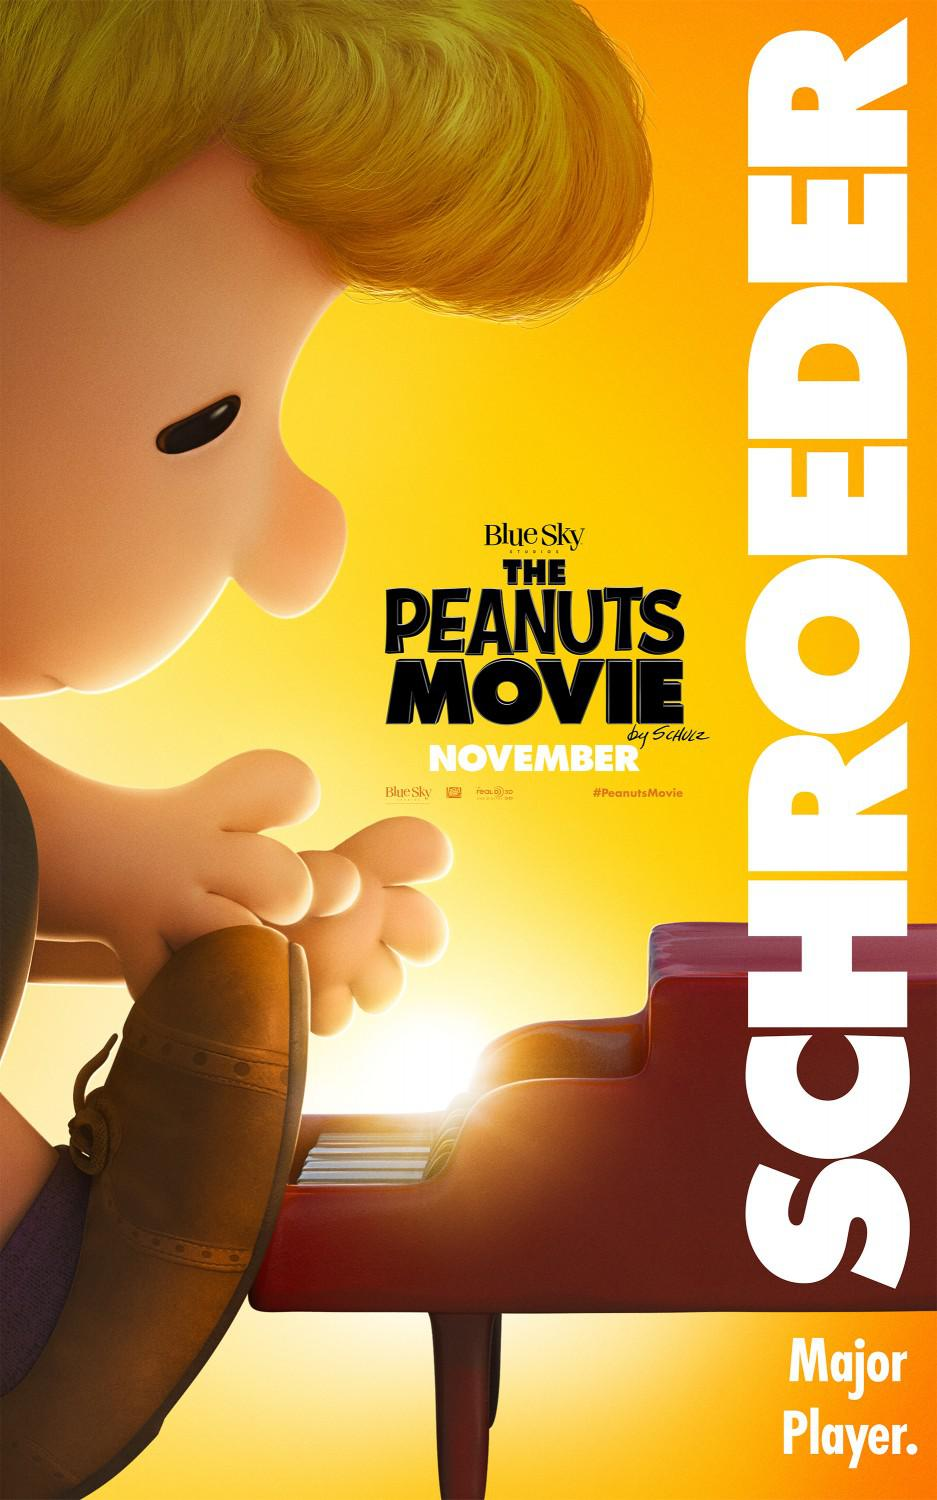 Snoopy and Charlie Brown the peanuts movie - Schroeder